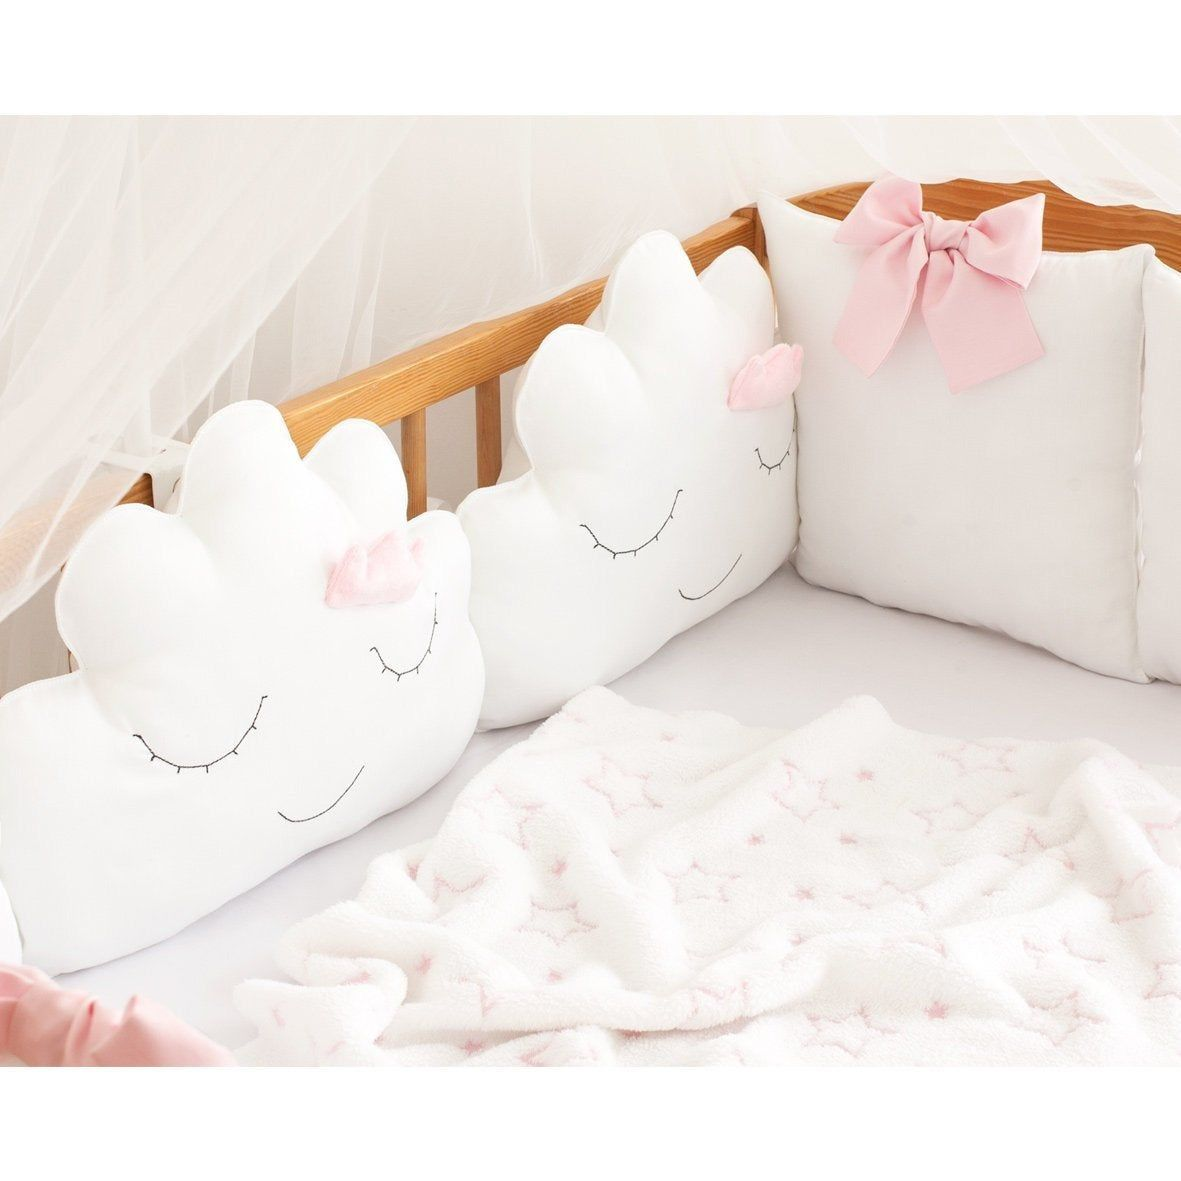 Complete Baby Nursery Bed Bedding Set Cot Boat Duvet Bumper Fitted Sheet Pillow